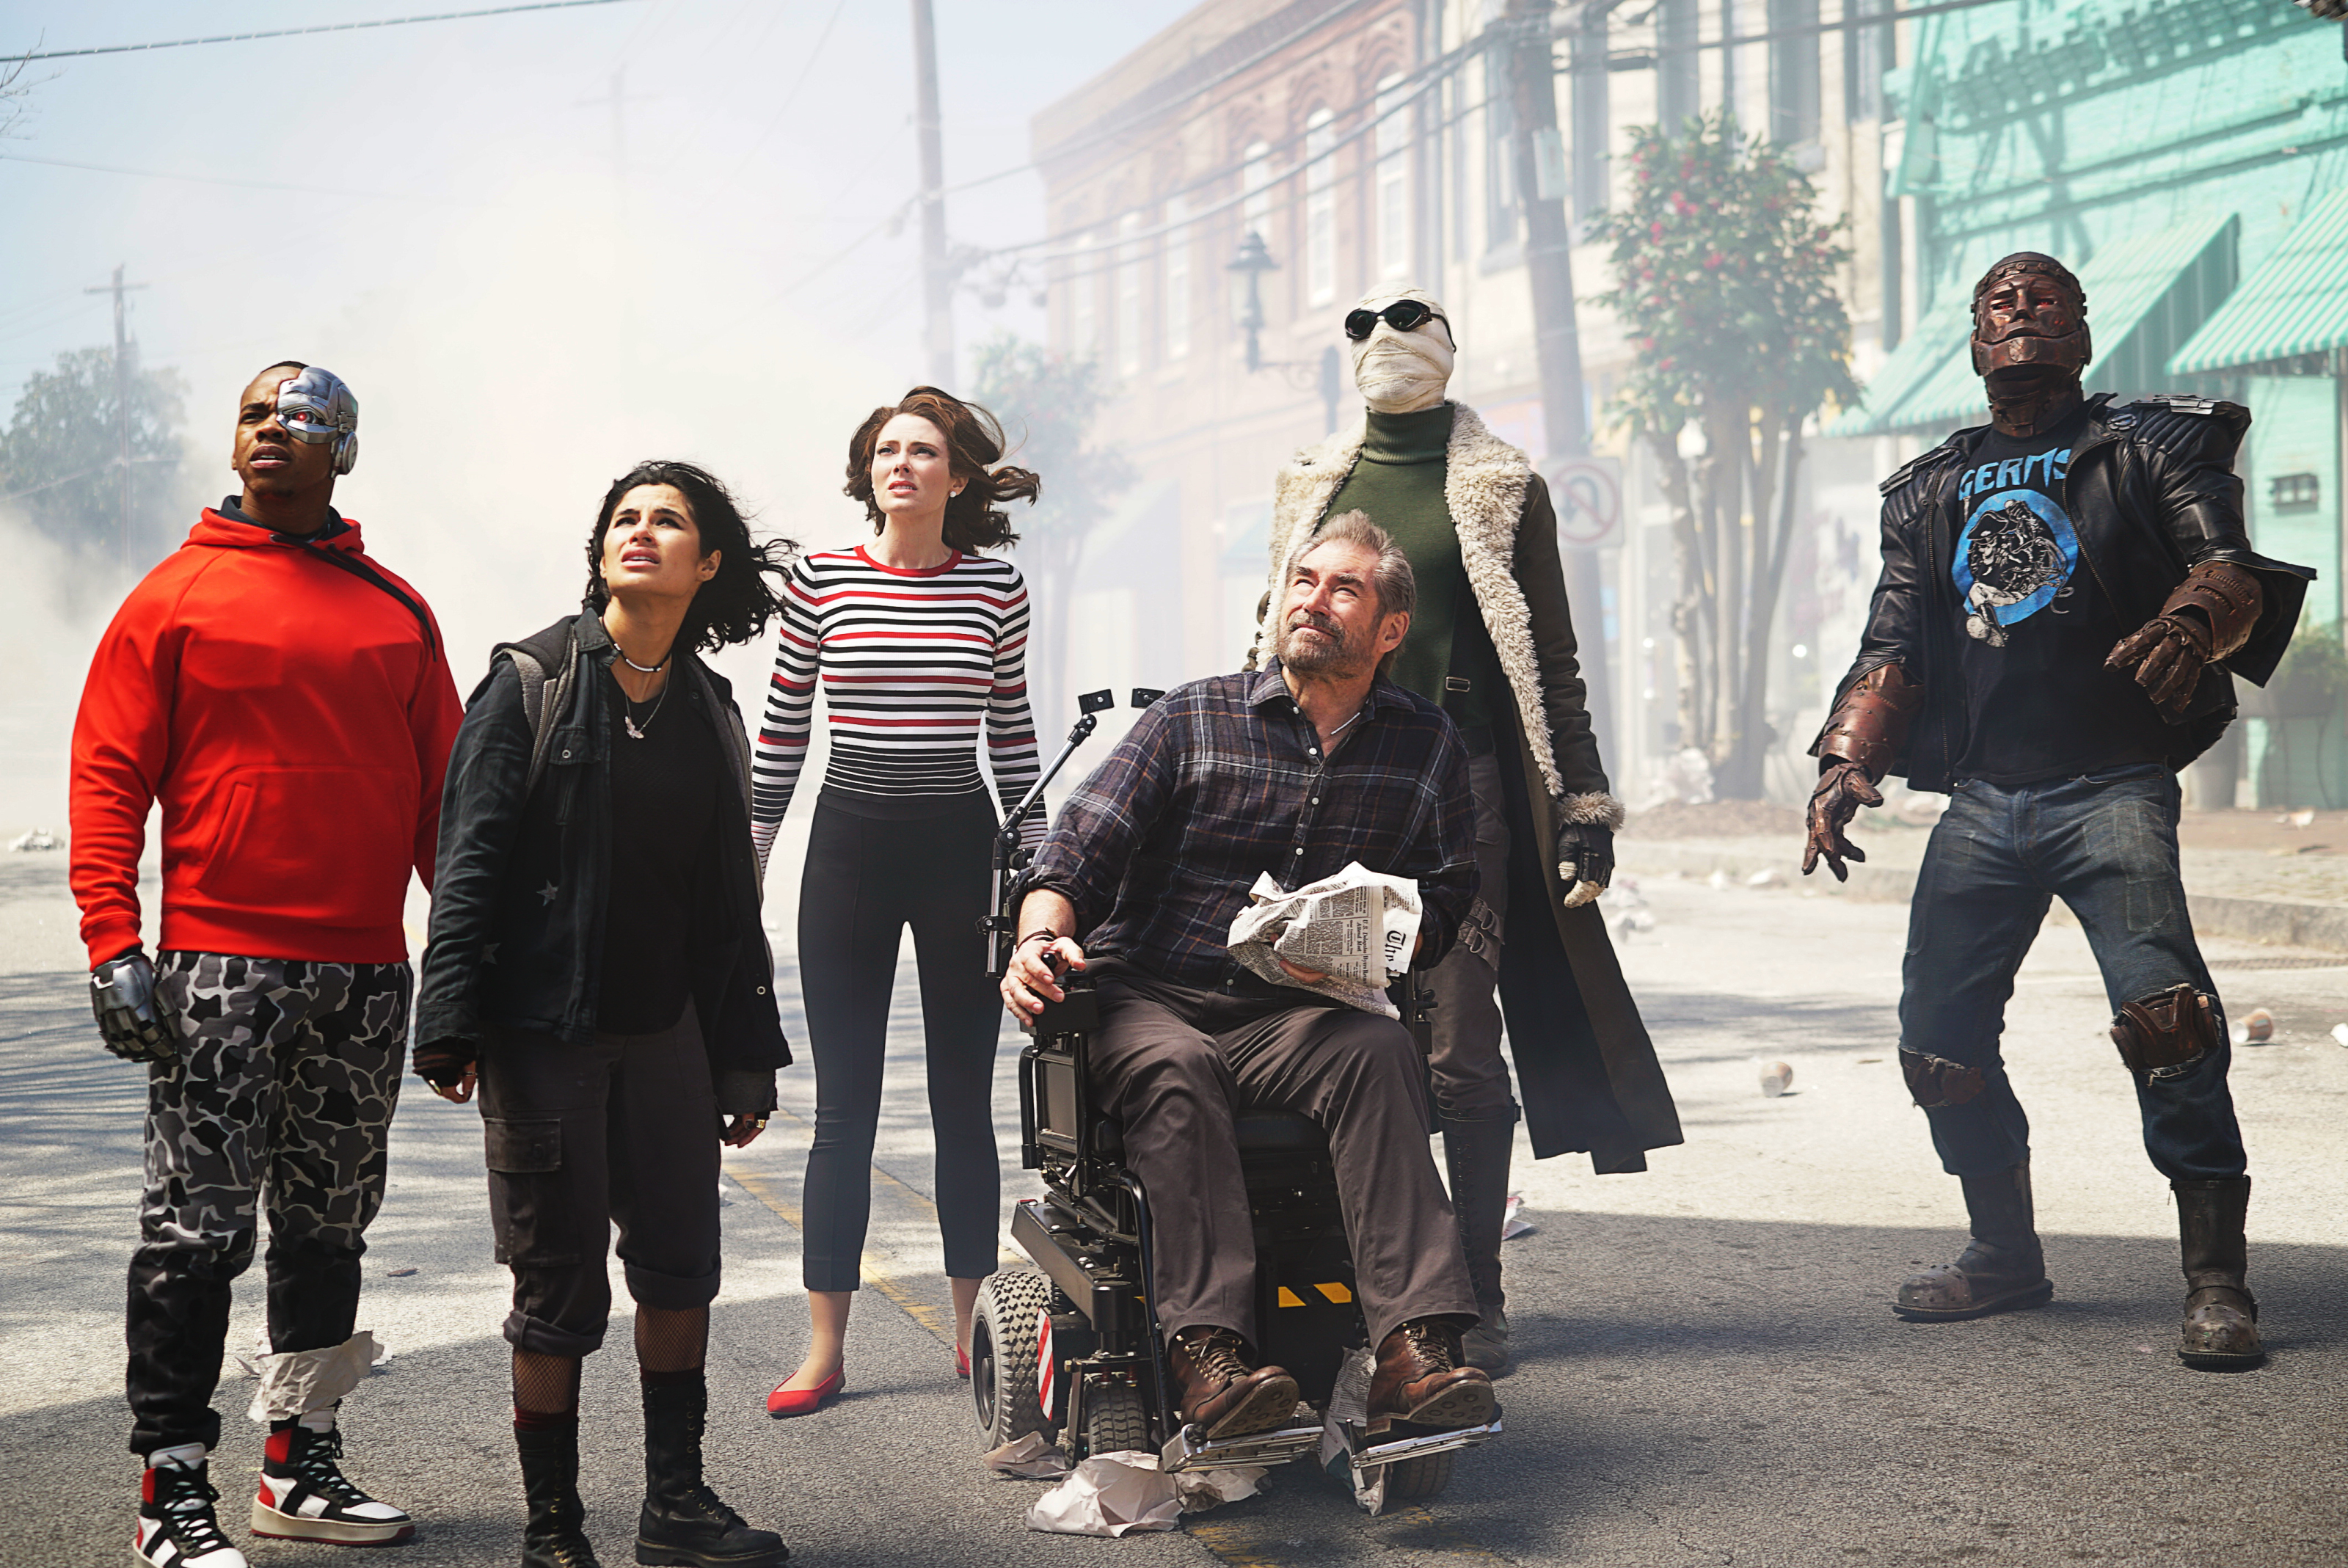 Doom Patrol Season 2 Trailer Release Date And More